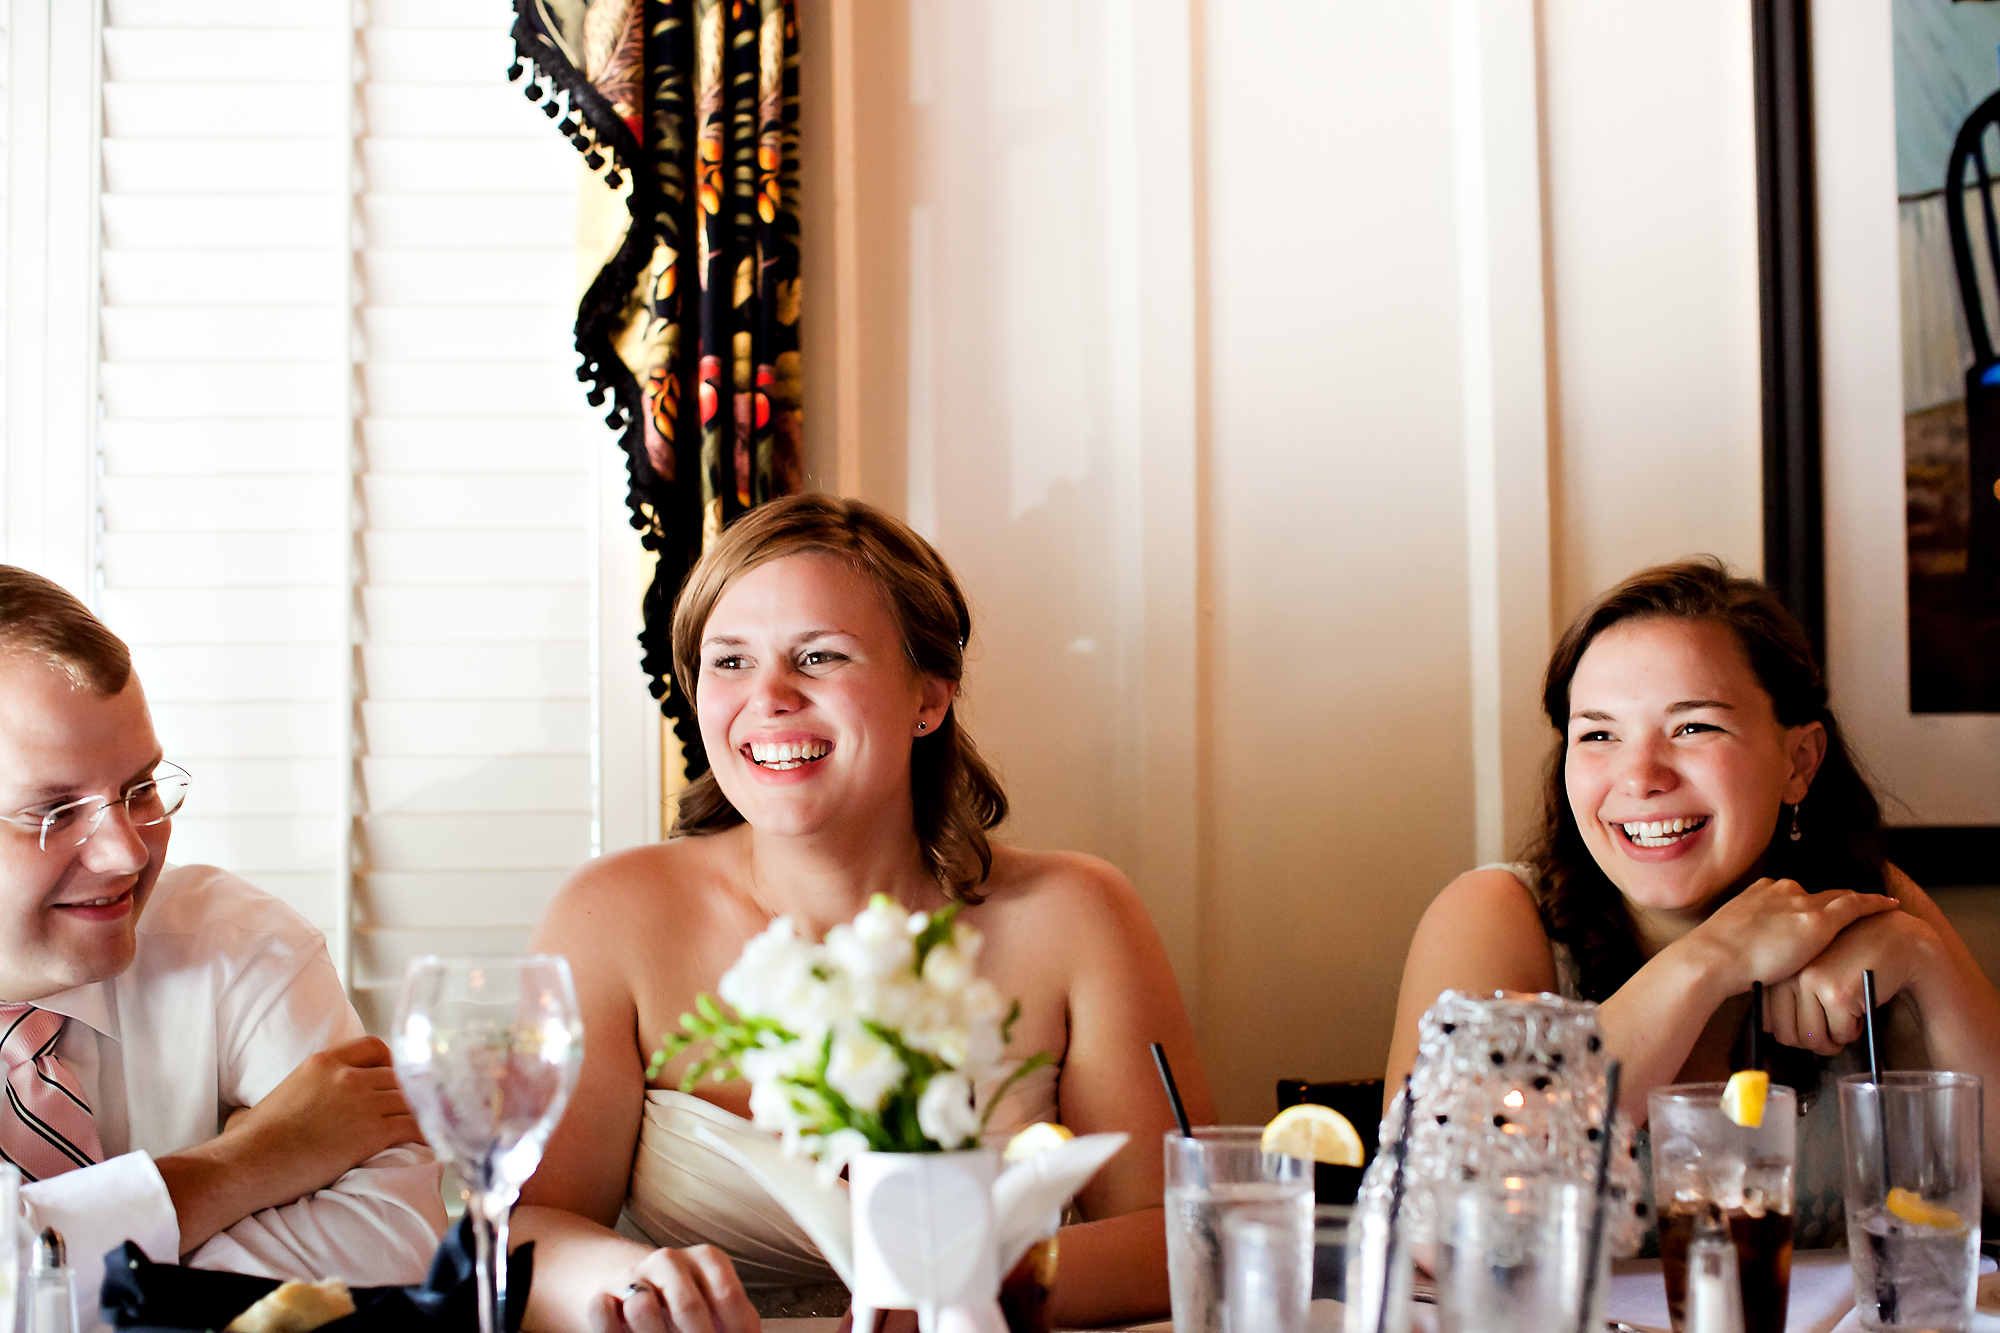 atlanta-wedding-photography-marlow-house-marietta-0098.jpg